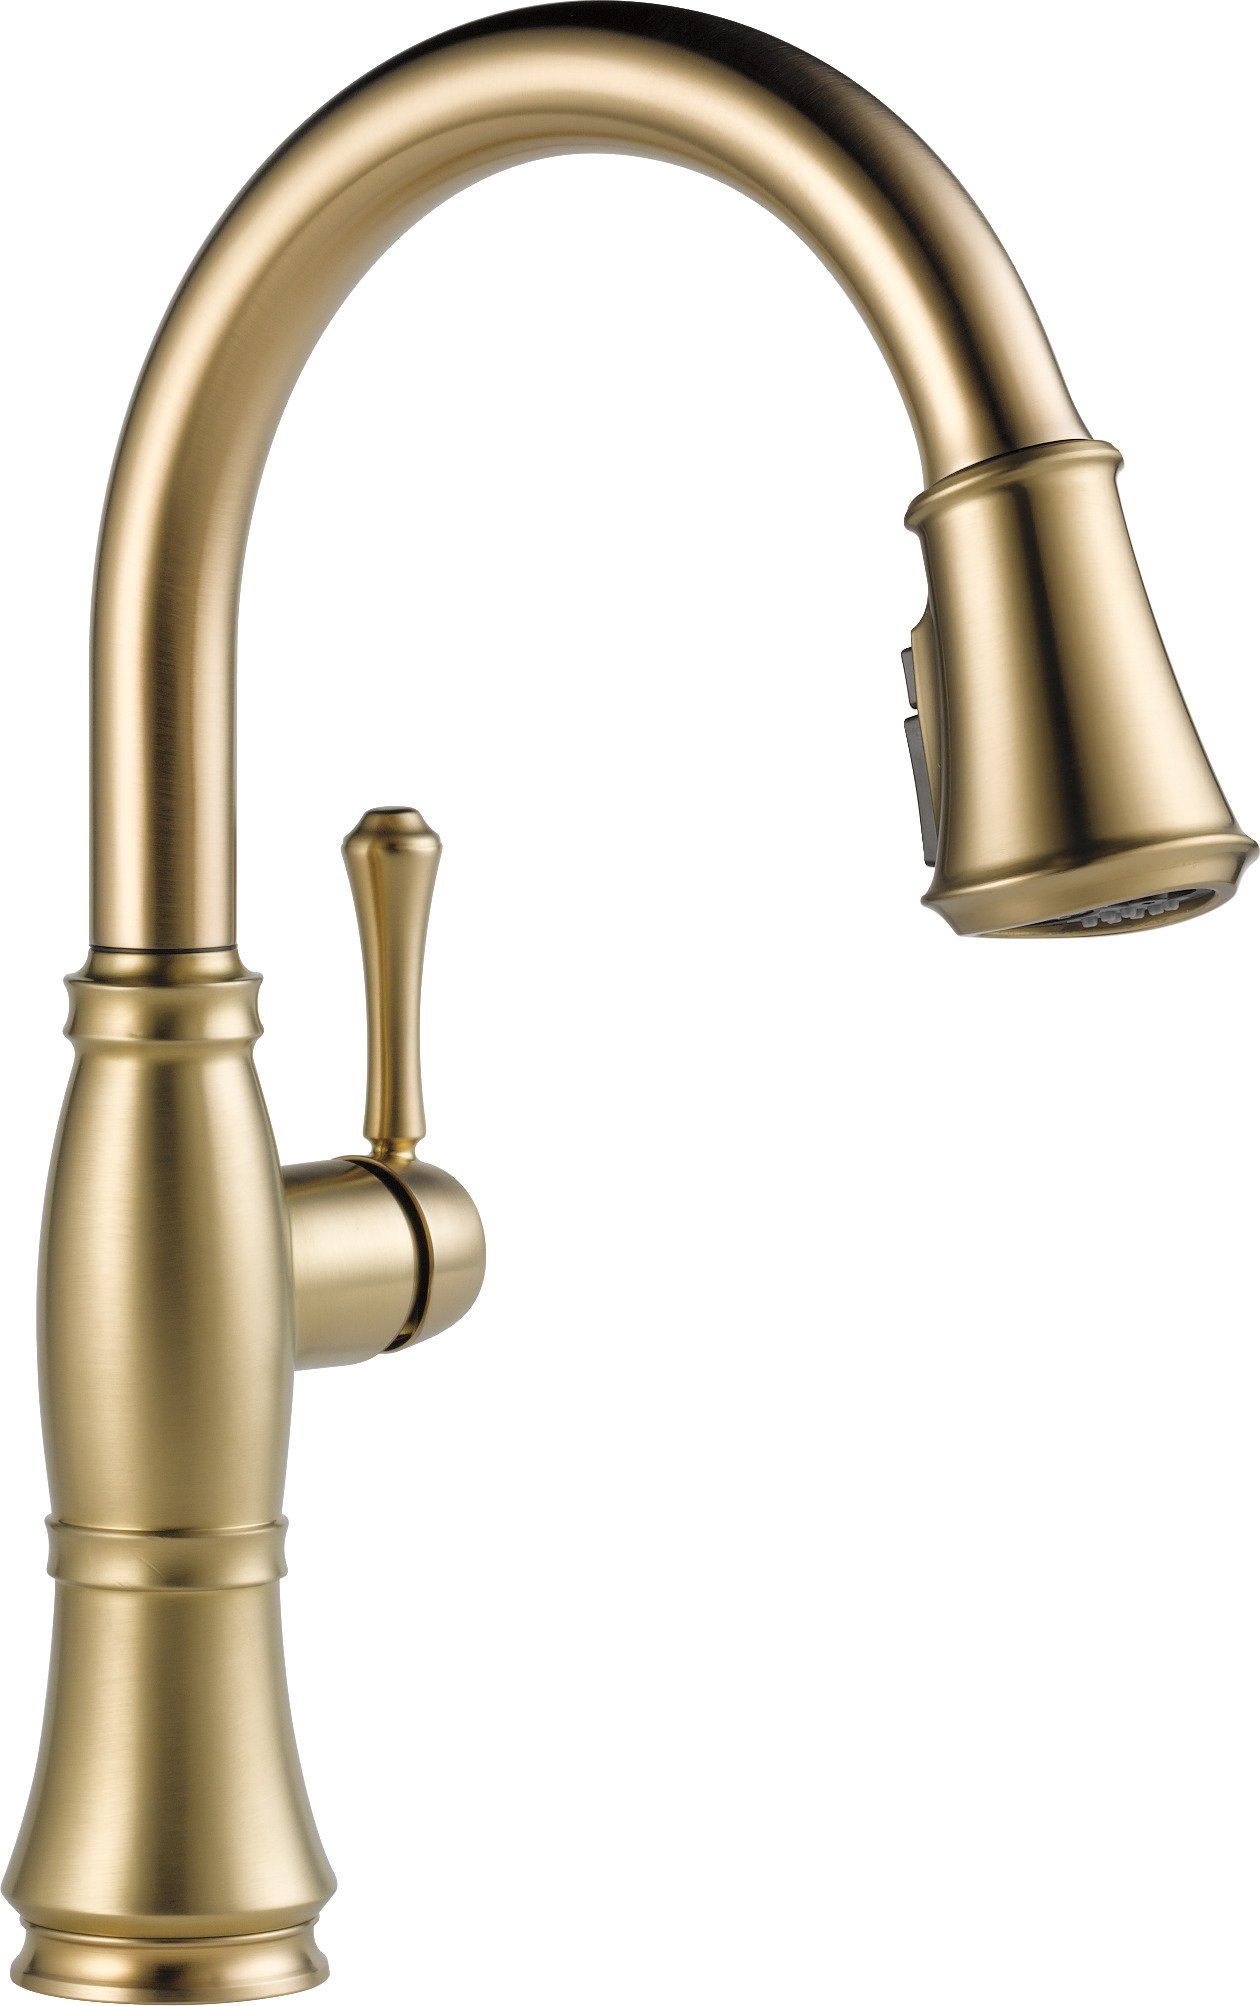 Delta 9197-CZ-DST Cassidy Single-Handle Pull-Down Kitchen Faucet with Magnetic Docking Spray Head, Champagne Bronze by DELTA FAUCET